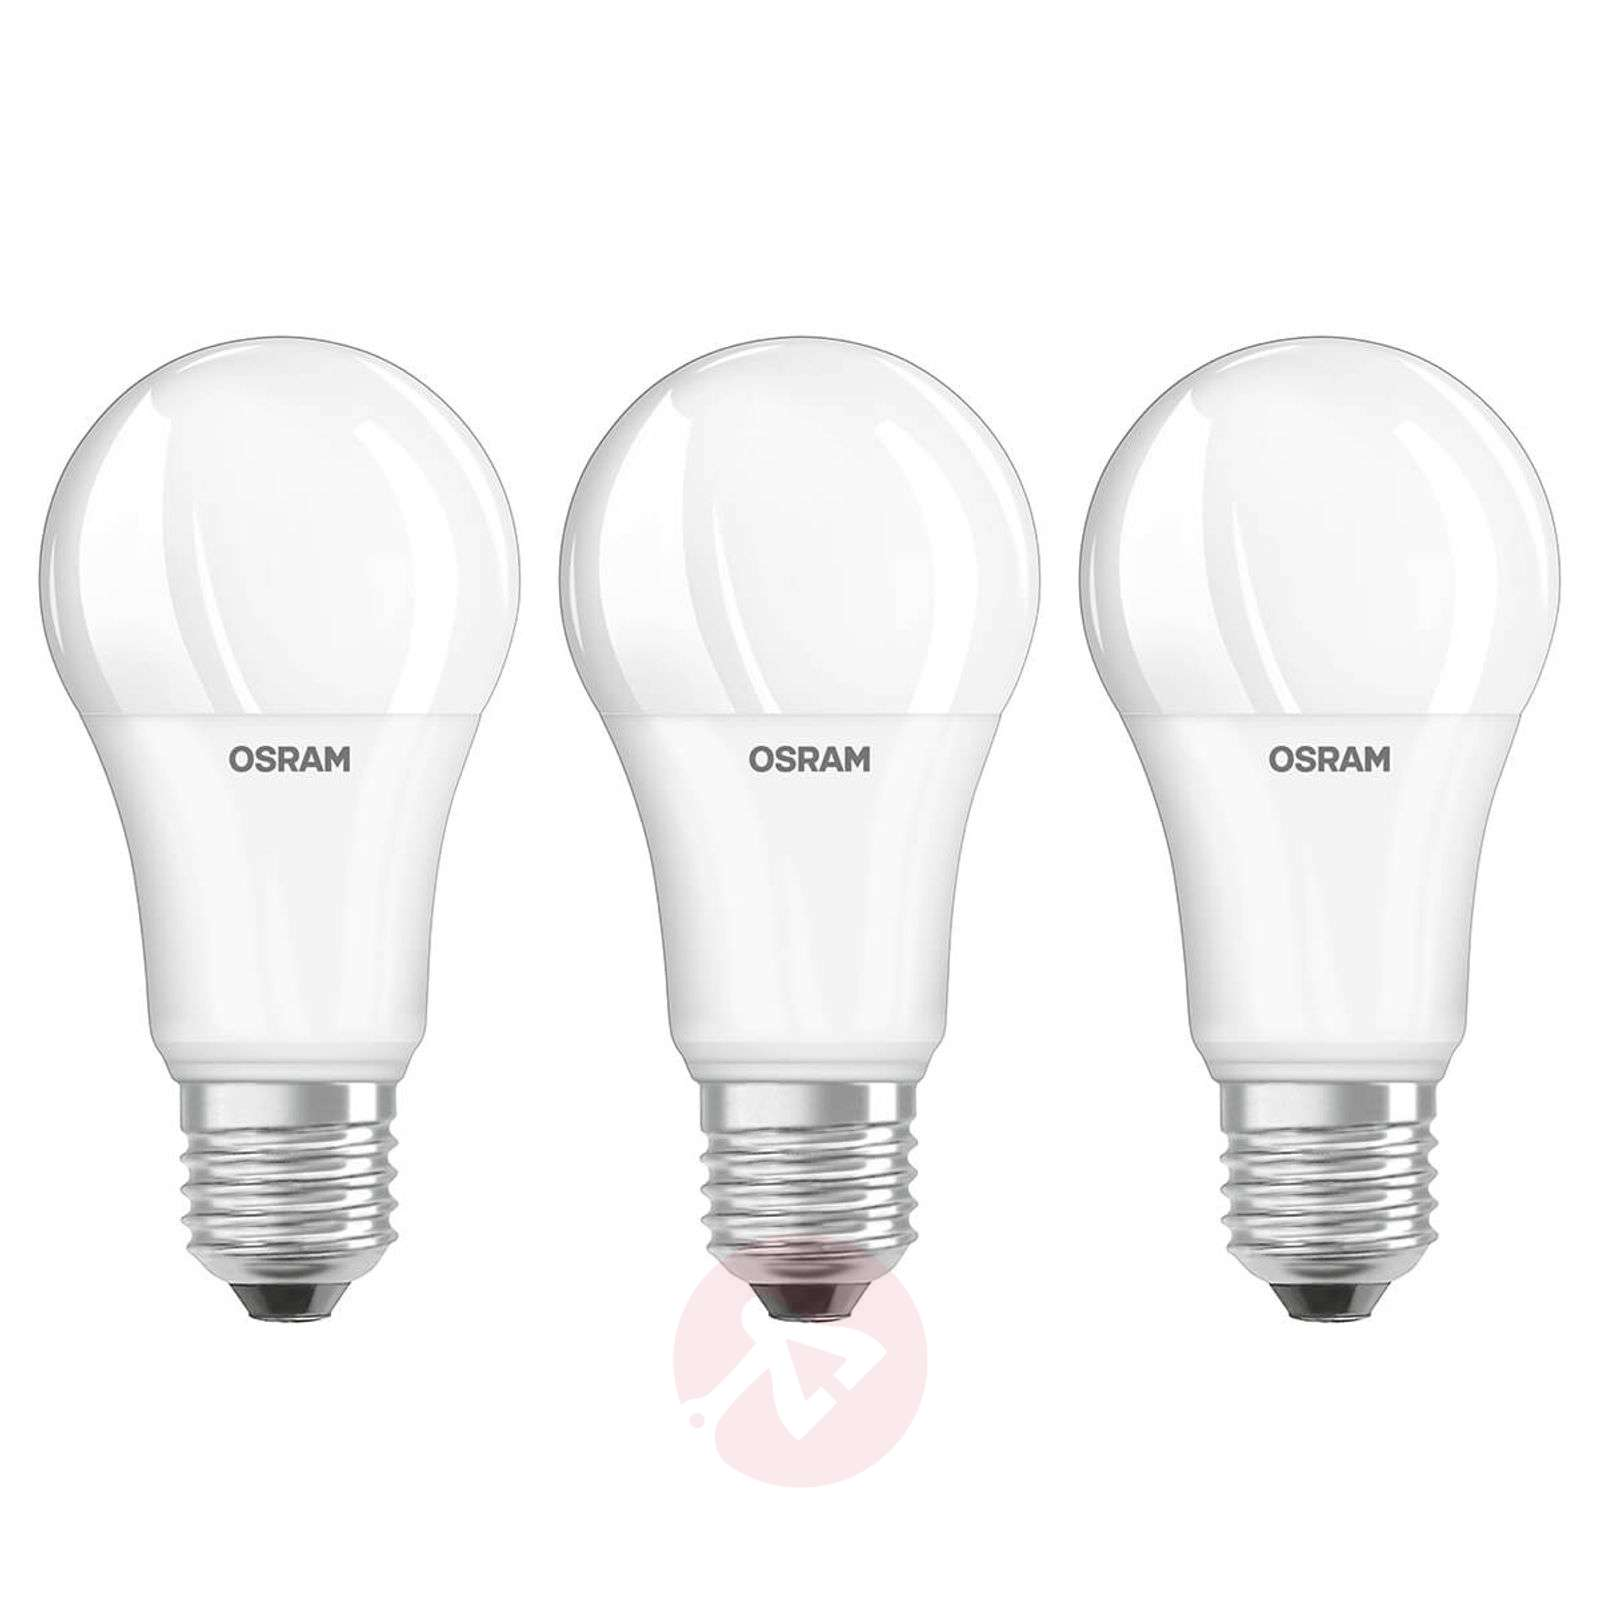 LED bulb E27 14 W, warm white, set of 3-7262103-01